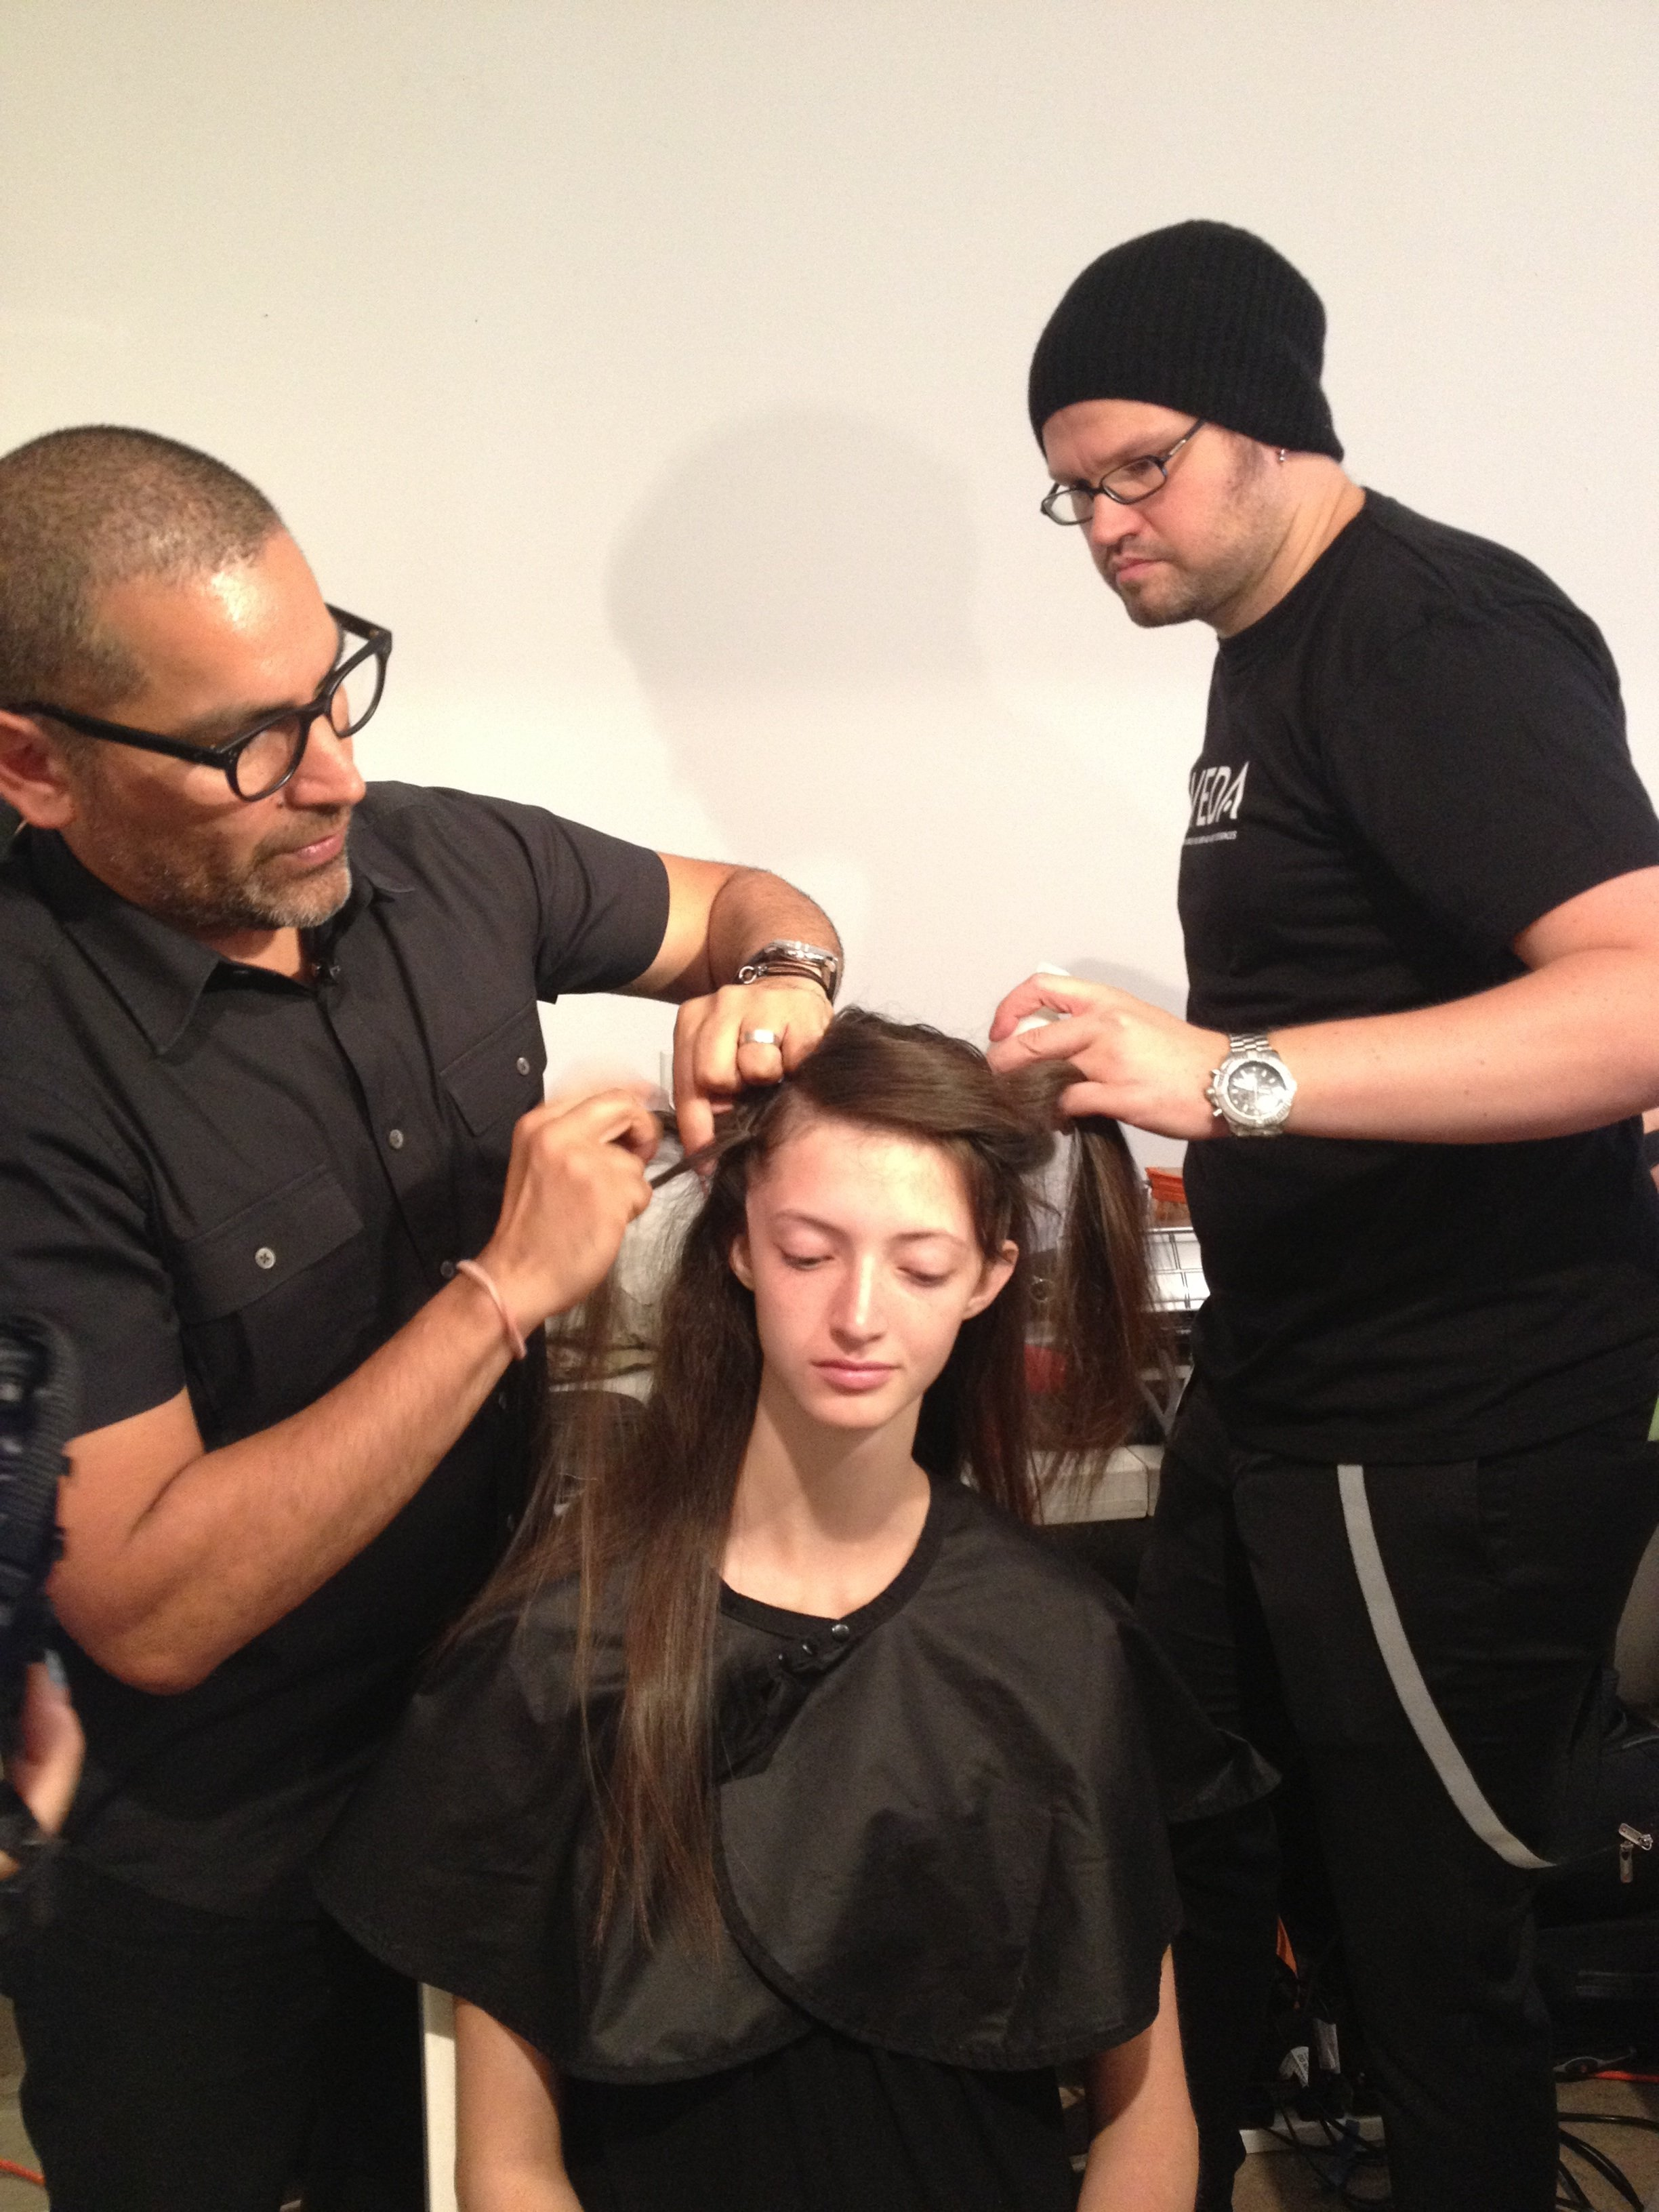 Allen Ruiz creates braids on either side of the head.